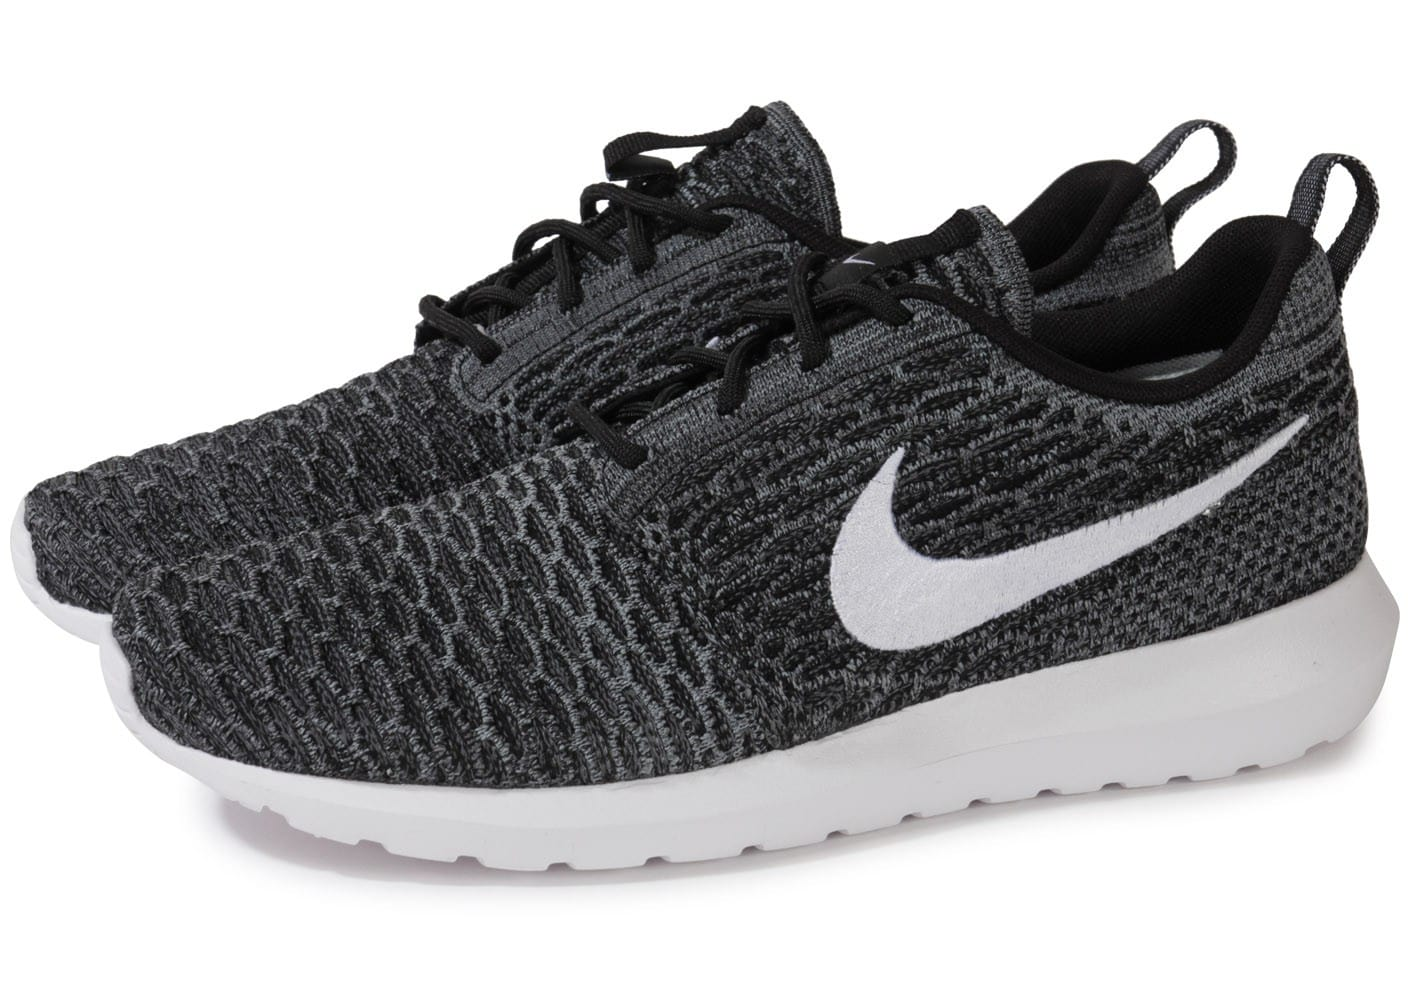 nike roshe run flyknit noire et blanche chaussures homme chausport. Black Bedroom Furniture Sets. Home Design Ideas